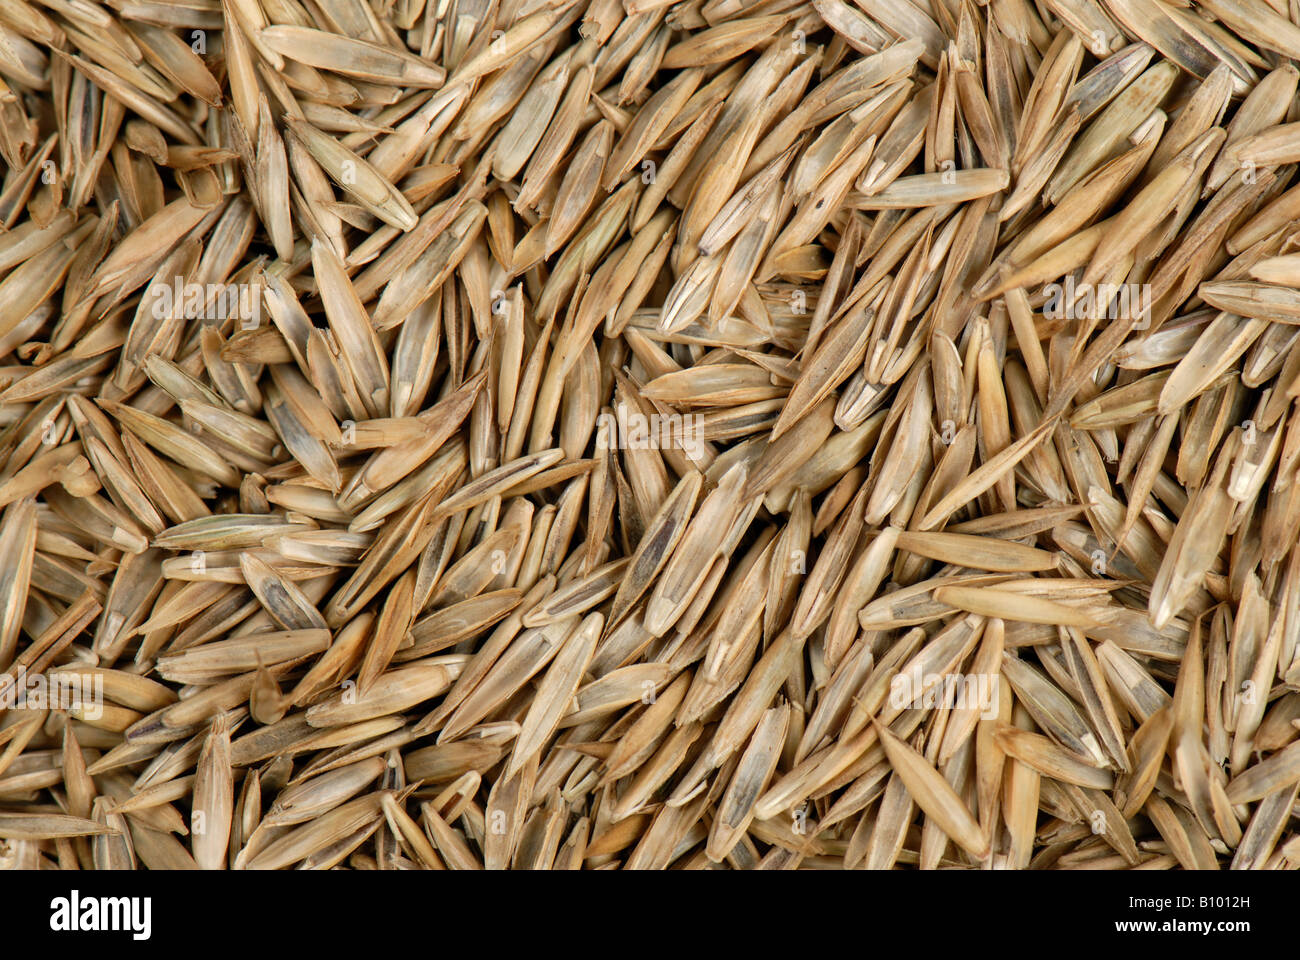 lawn grass seed including ryegrass lolium sp stock photo royalty free image 17825881 alamy. Black Bedroom Furniture Sets. Home Design Ideas